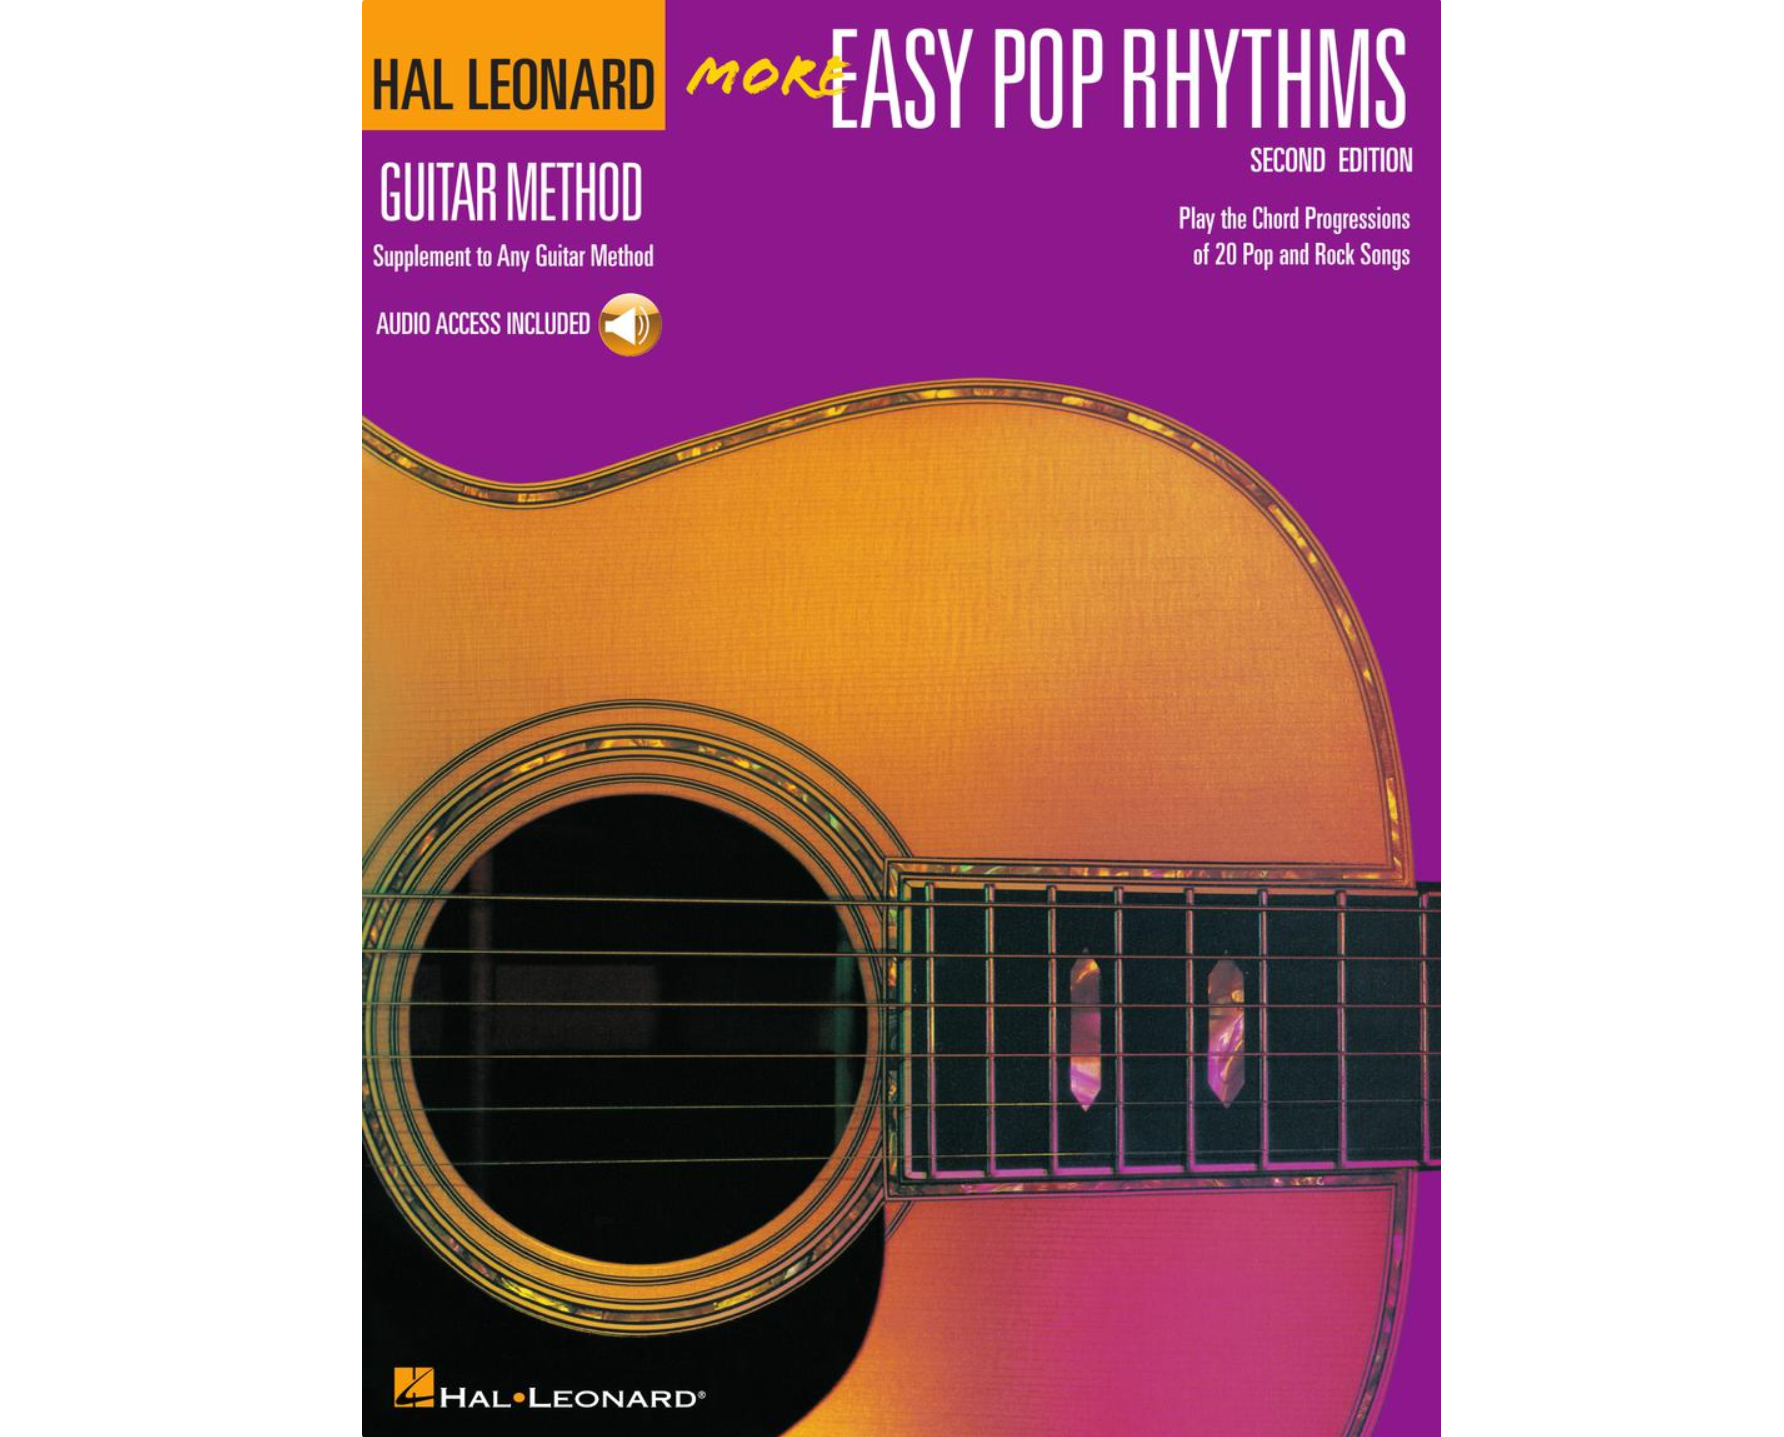 More Easy Pop Rhythms for Guitar with Audio Access